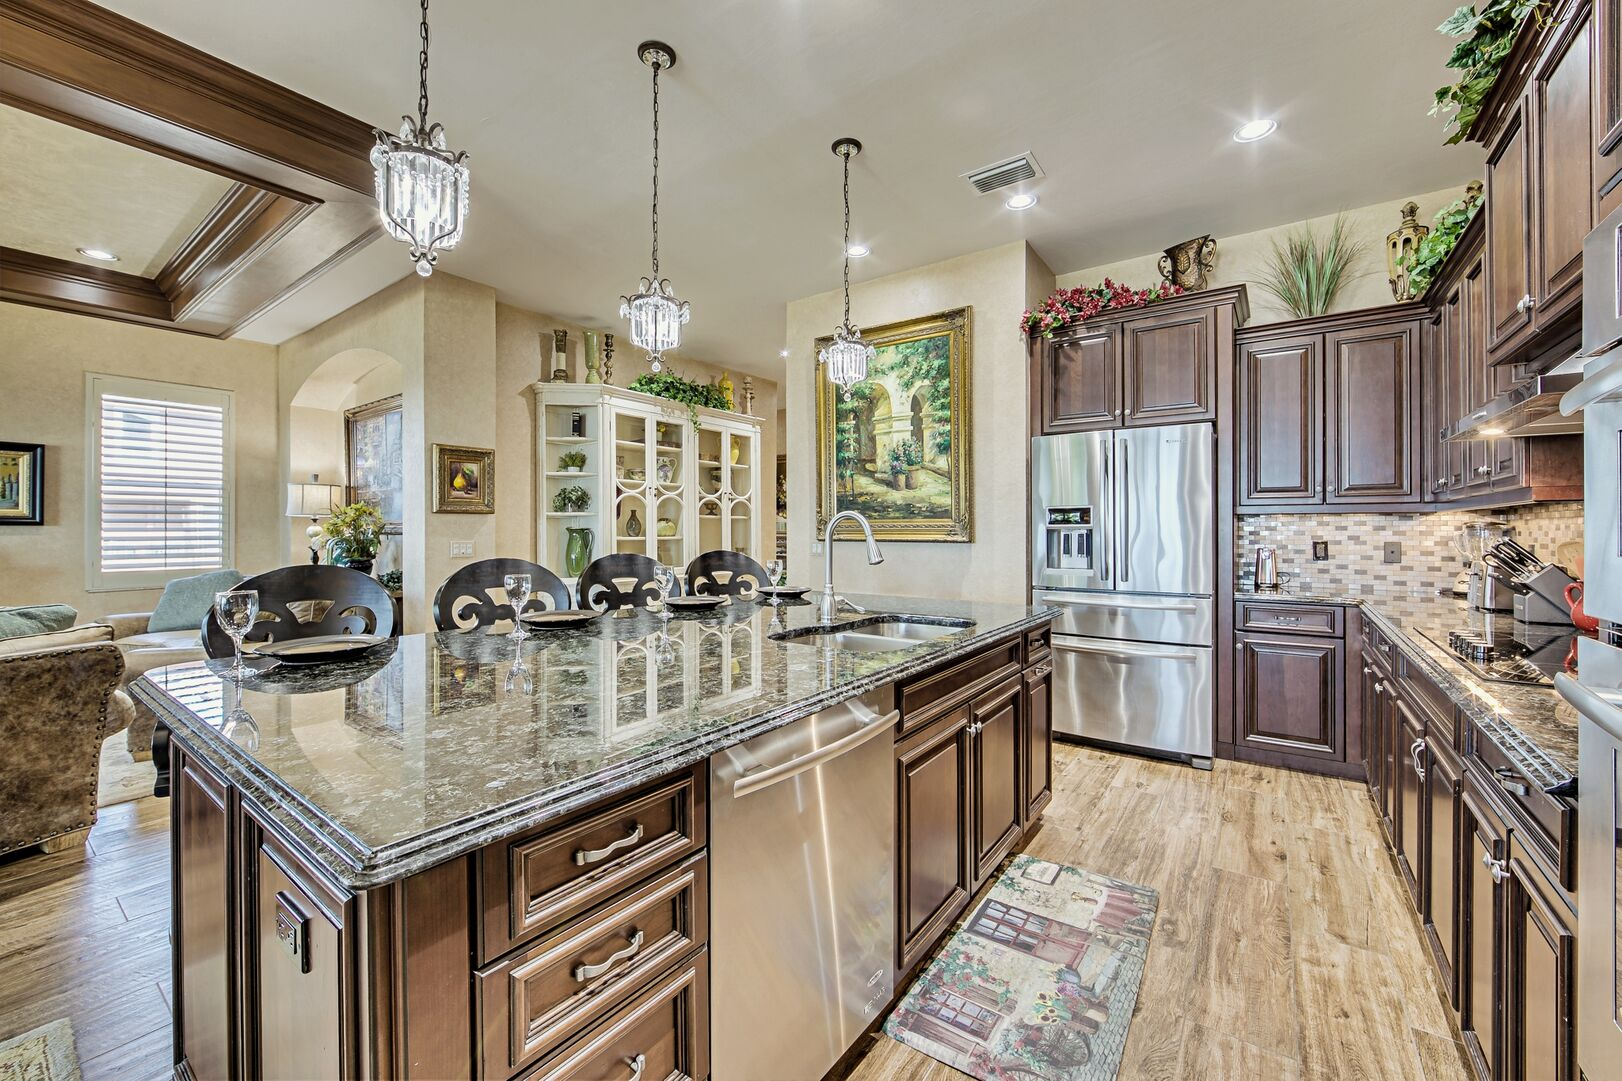 Kitchen with Island, High Chairs, Refrigerator, and Dishwasher.